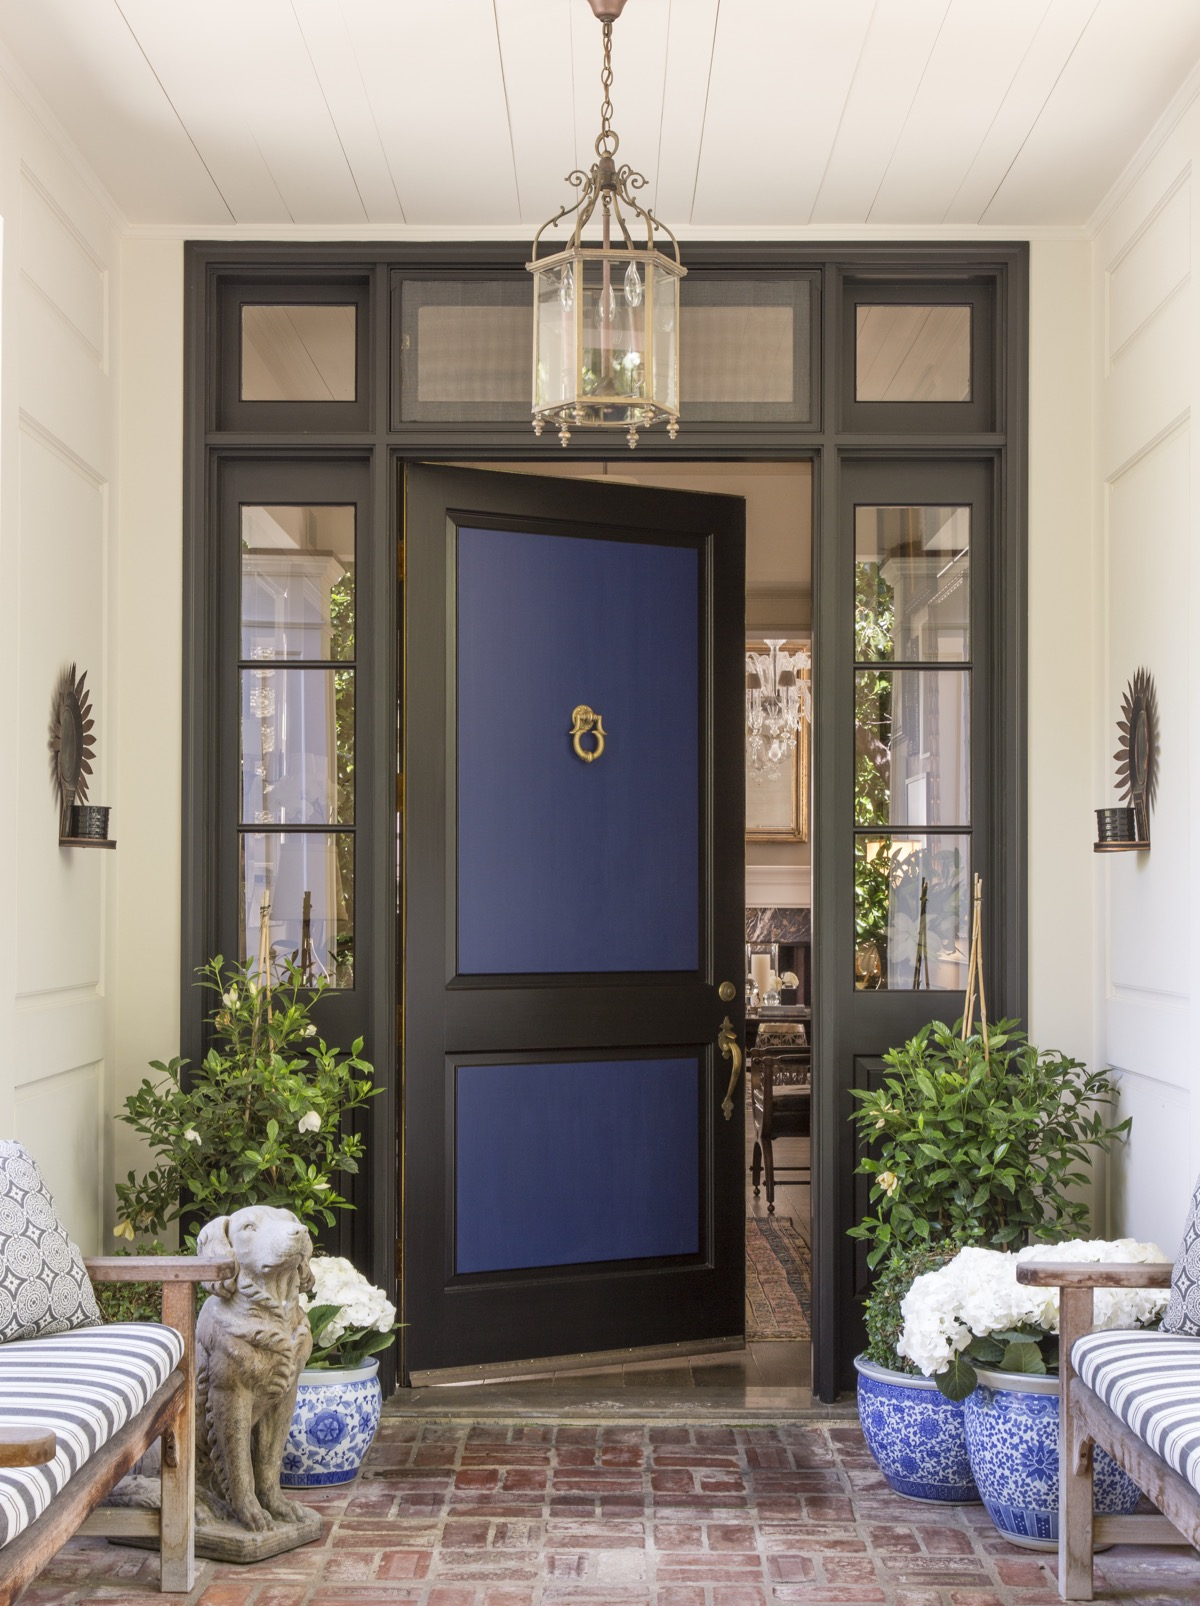 Front door overhang with blue door, matching benches with patterned cushions, potted plants.brick walkway.